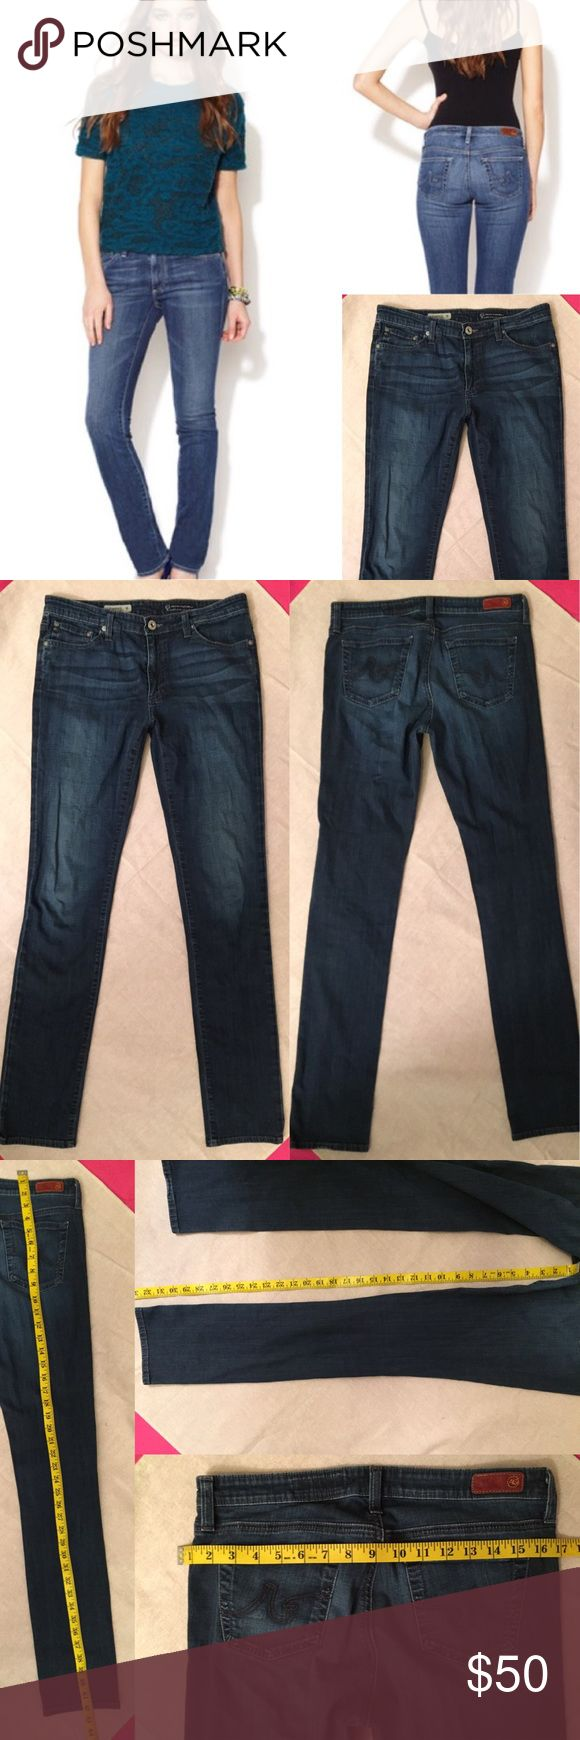 AG the premiere skinny straight Jean Size 29r. Gently worn. 🙆🏻no trades or off site transactions.Since I have a variety of sizes I do not model🙅🏻Low ball offers are not accepted. Please accept that I offer the lowest price I'm willing to offer at that point😁I have an illness that sometimes requires serious medical attention & 2 little ones 👶🏼👶🏻 so if I don't respond I'm either very ill that day 🚑 or have been kidnapped by my kids.Thank you for shopping my closet! 💋 Ag Adriano…